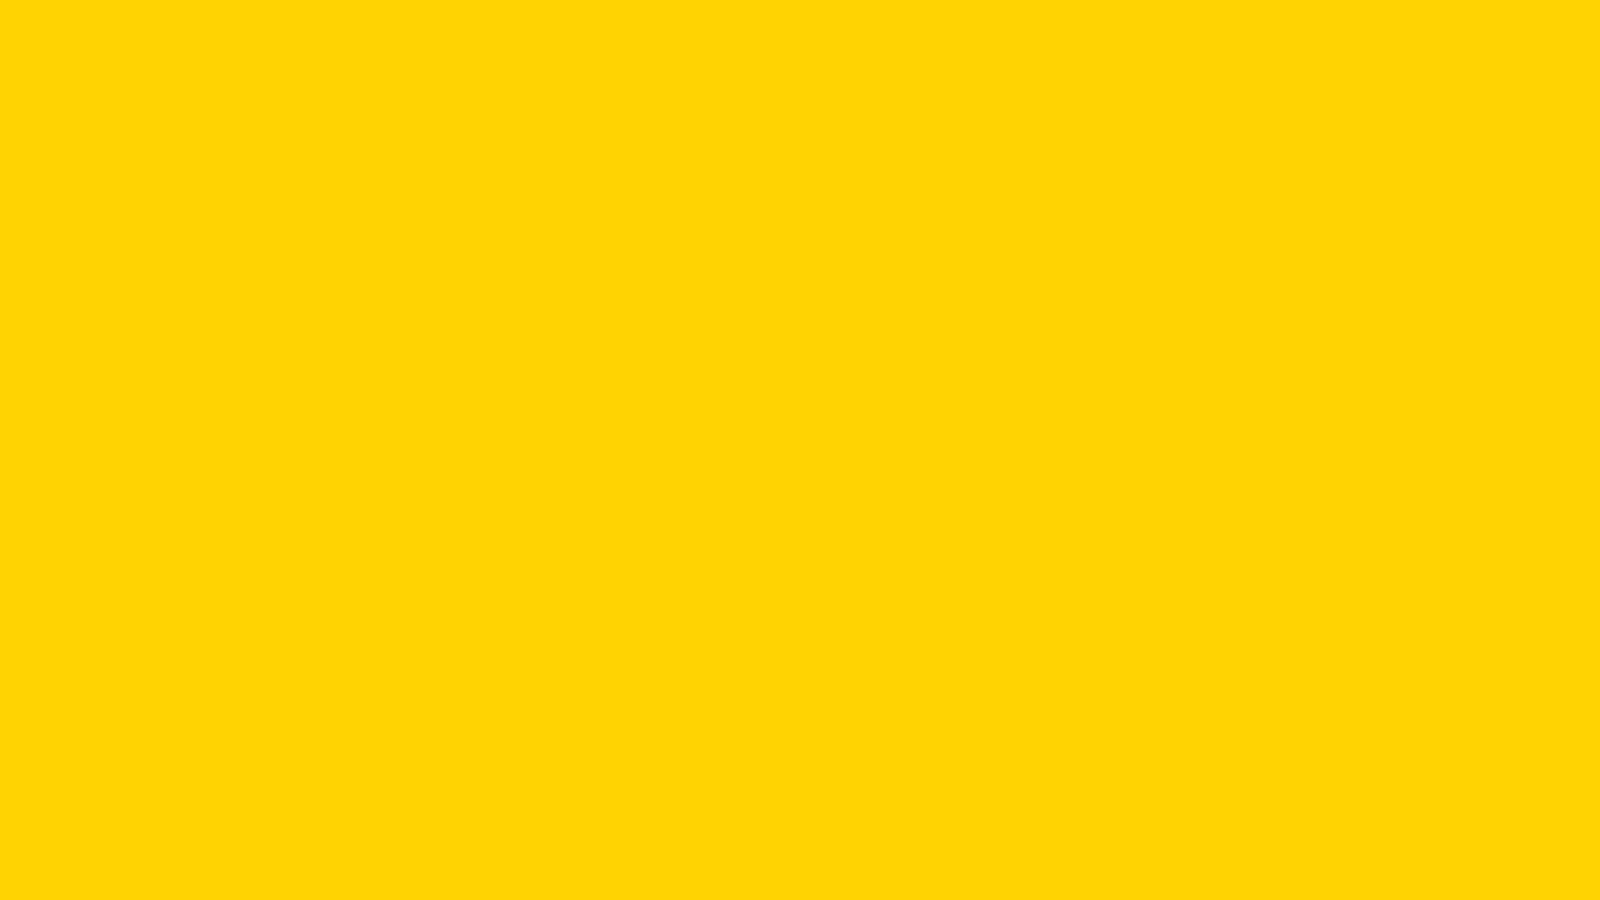 1600x900 Cyber Yellow Solid Color Background